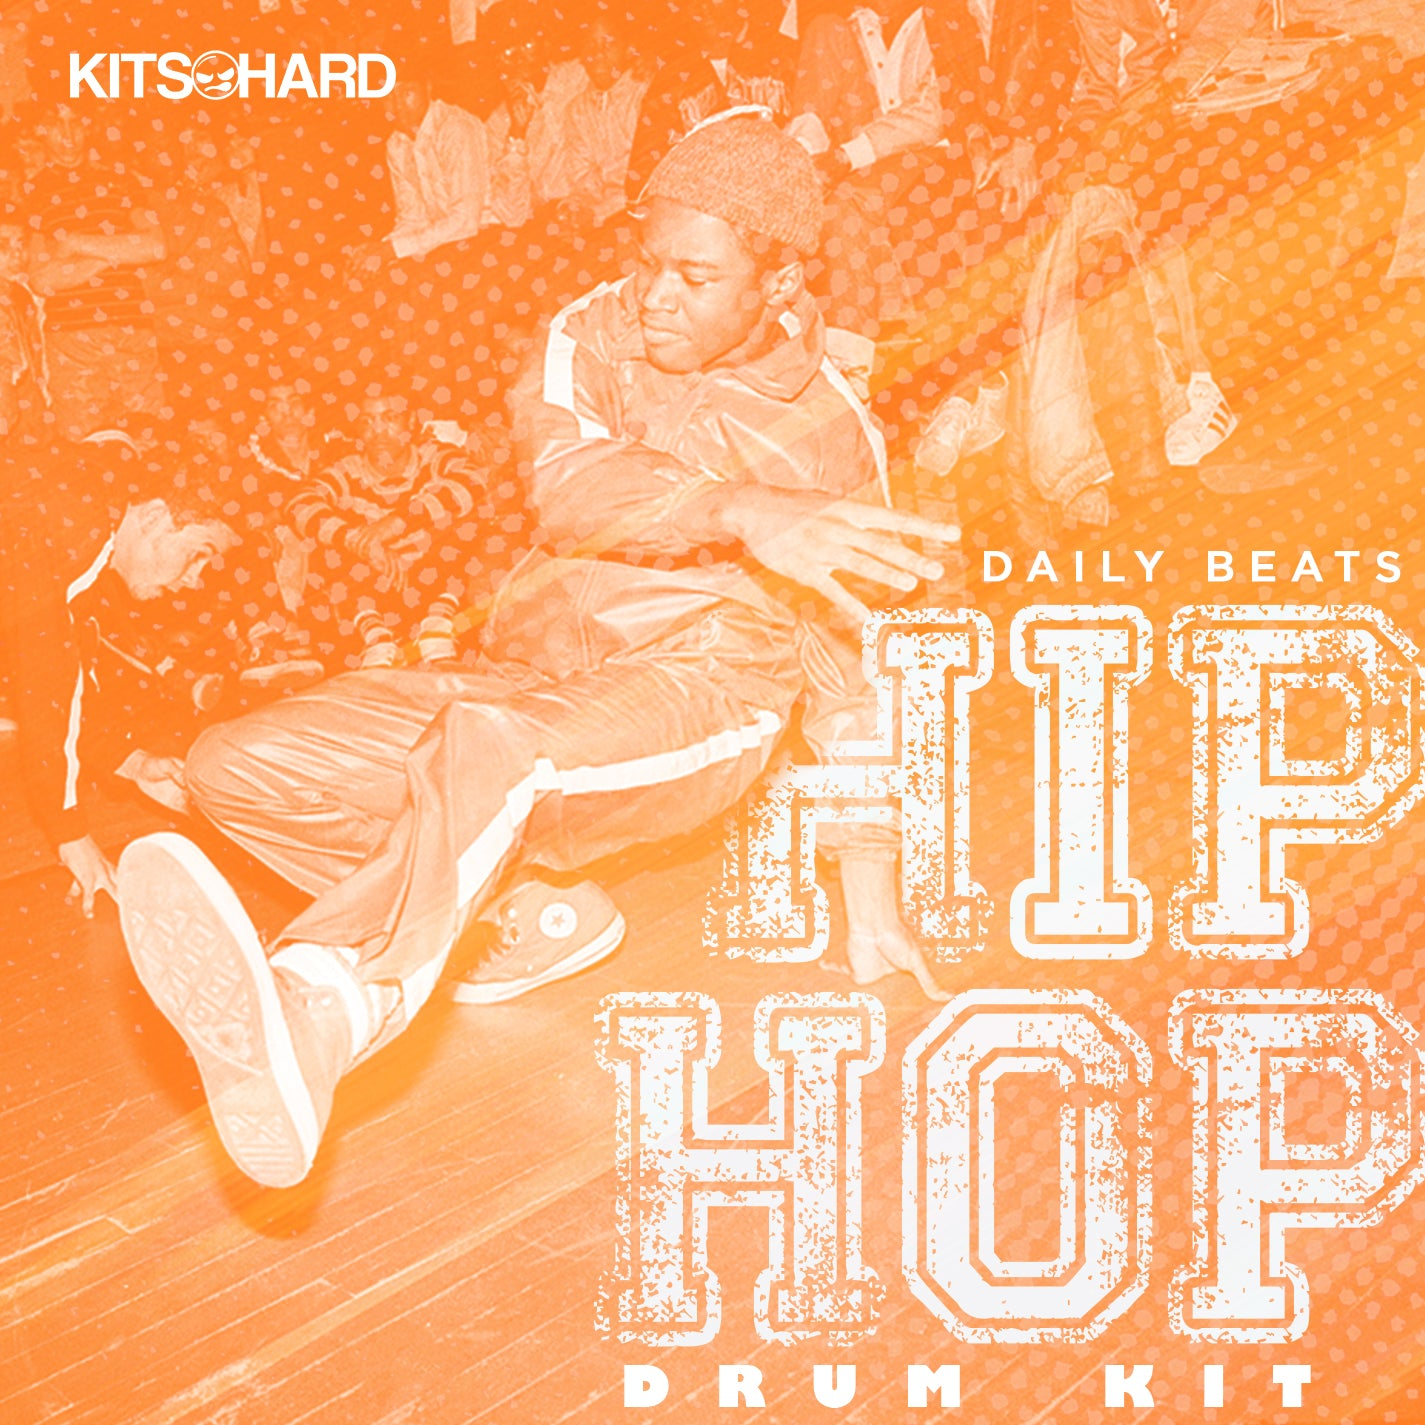 Daily Beats Hip Hop  Drum Kit